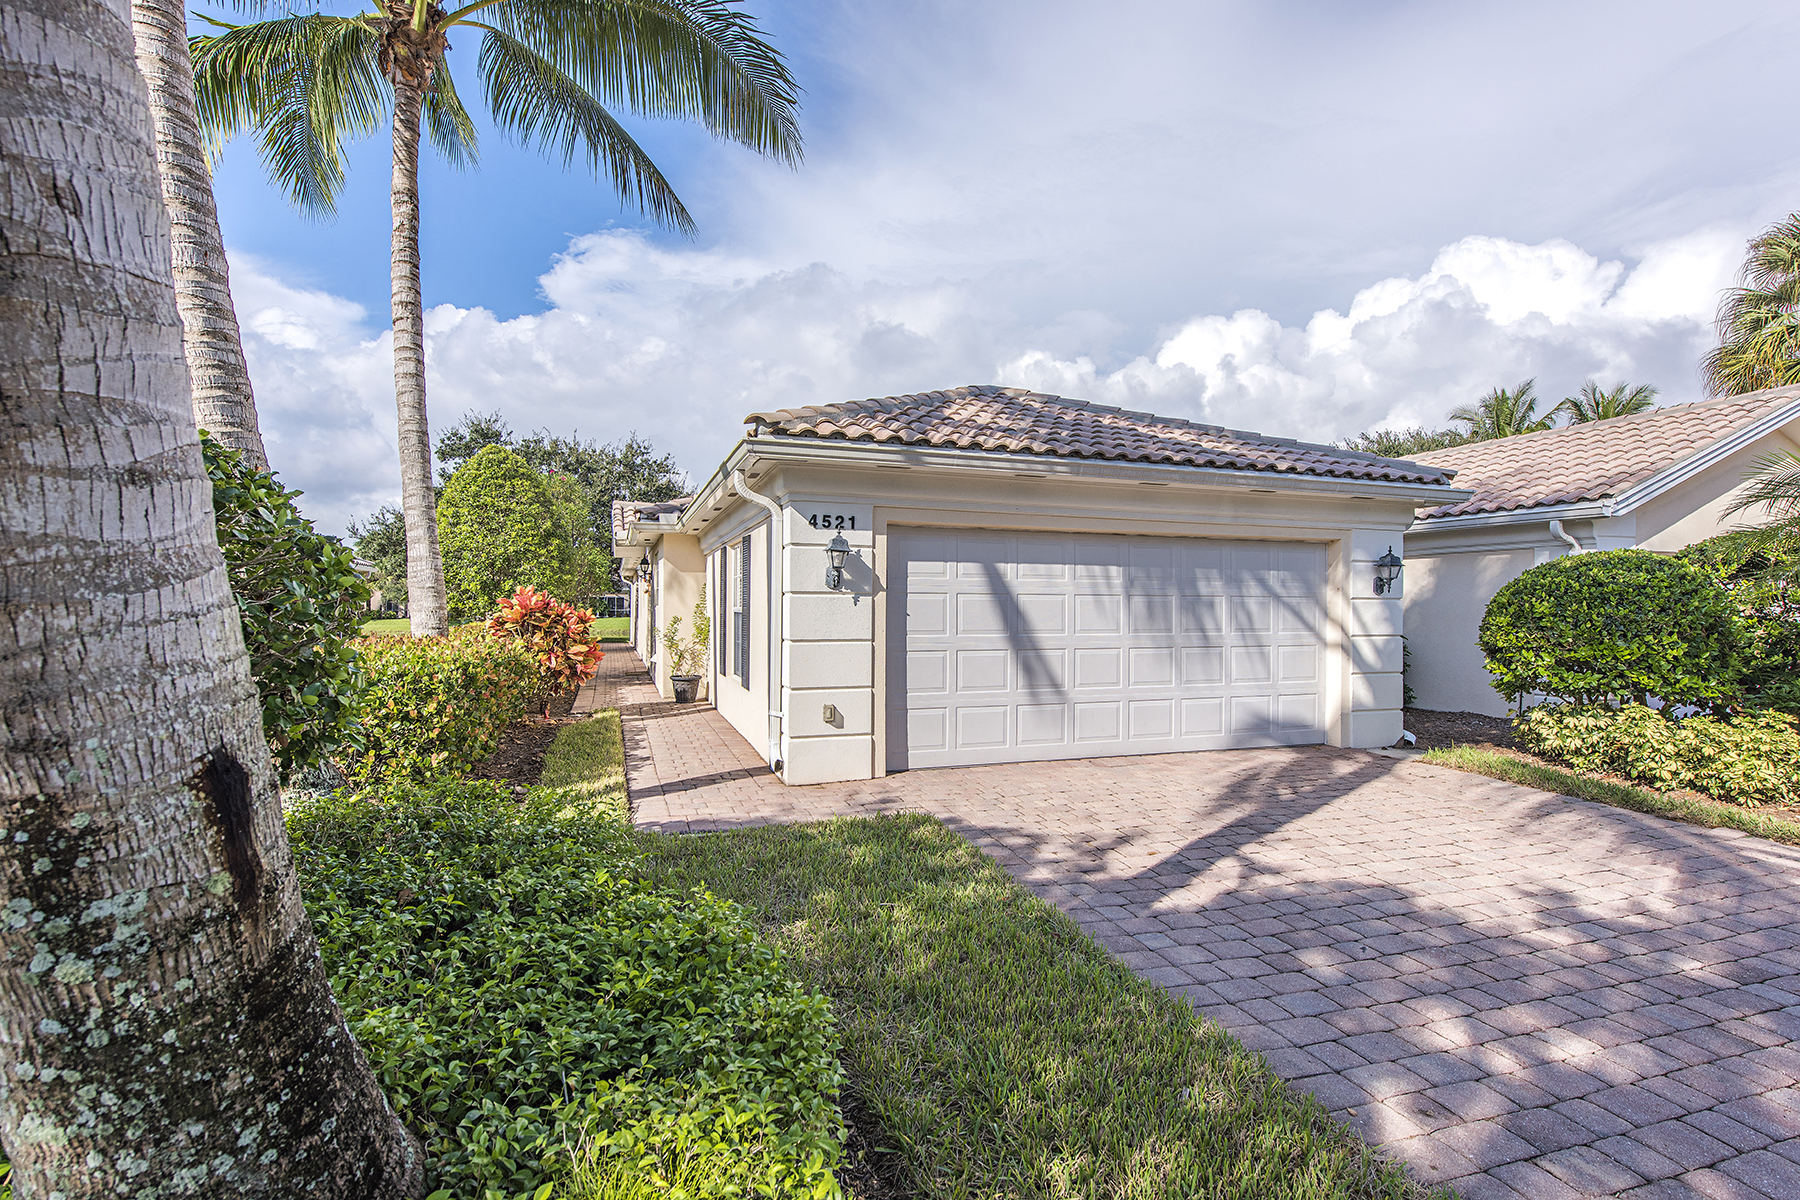 Single Family Home for Sale at ISLAND WALK 4521 Ossabaw Way Naples, Florida, 34119 United States